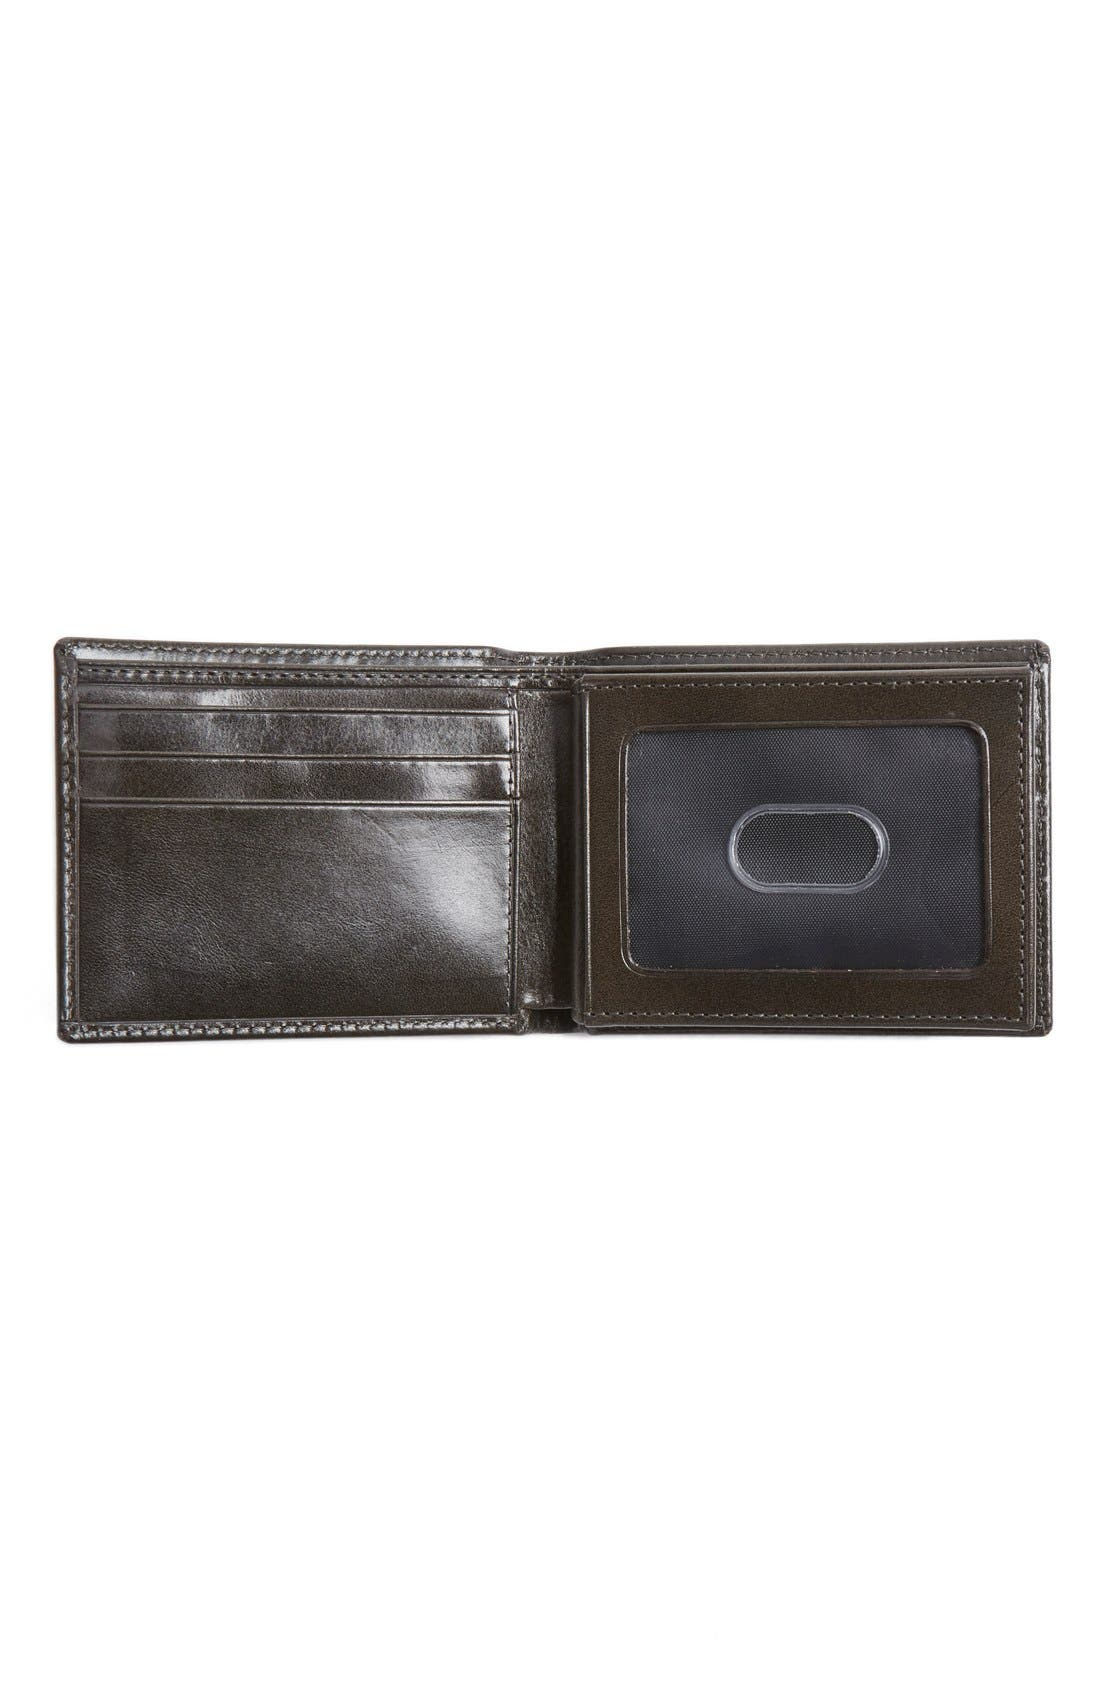 Flip Billfold Leather Wallet,                             Alternate thumbnail 2, color,                             020